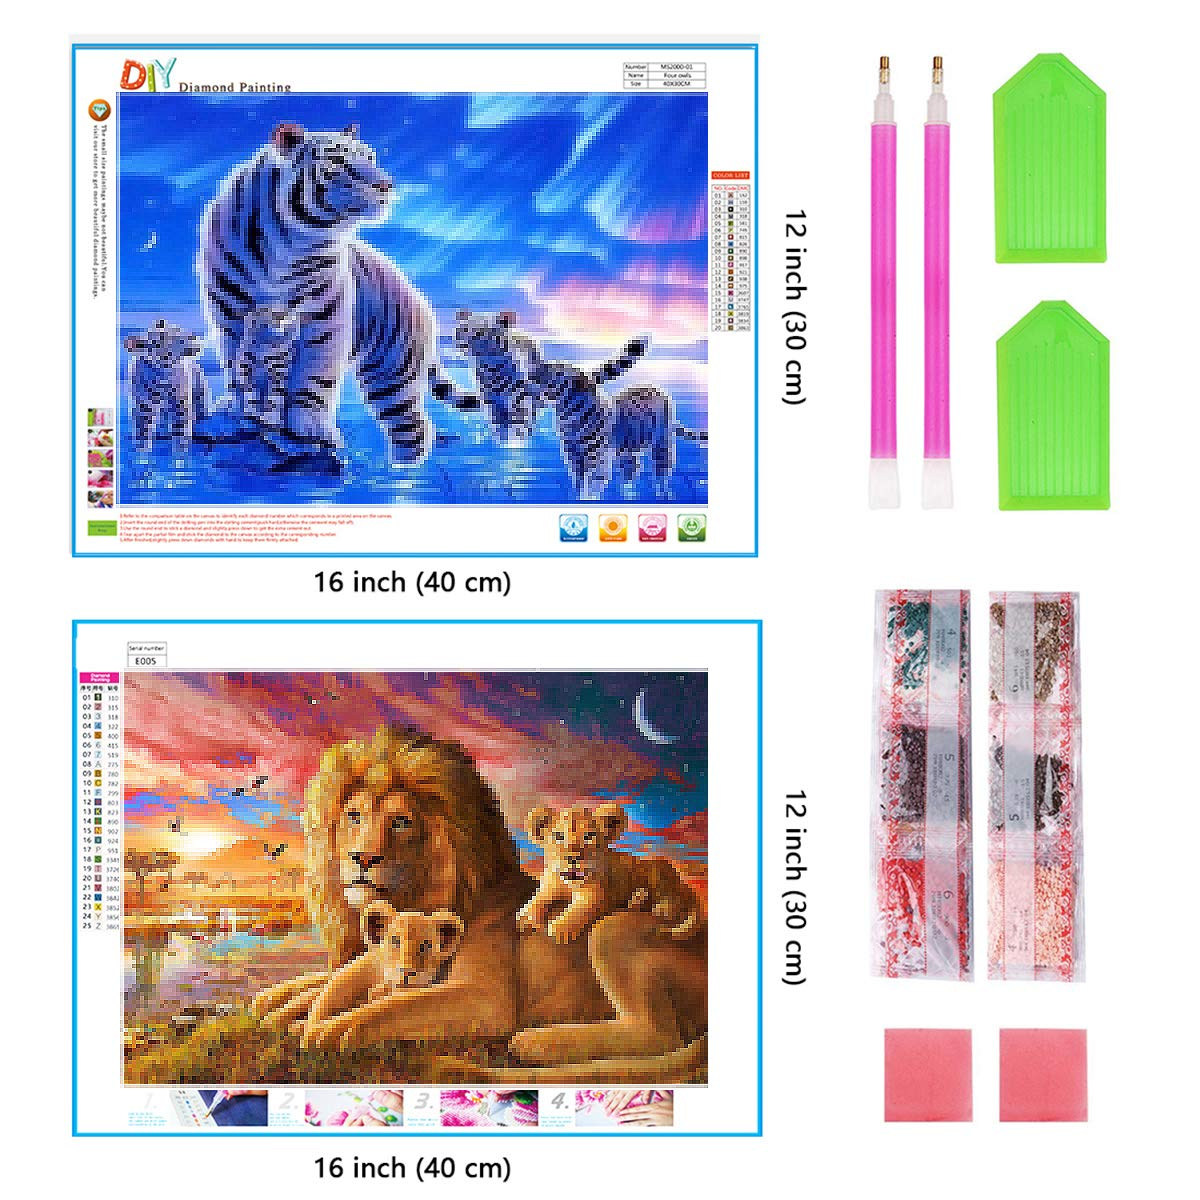 2 Pack 5D Diamond Painting Tigers /& Lions Full Drill by Number Kits for Adults Kids Ginfonr Craft Rhinestone King of Polar Regions /& Oasis Paint with Diamonds Set Animal Arts Decorations 12x16inch